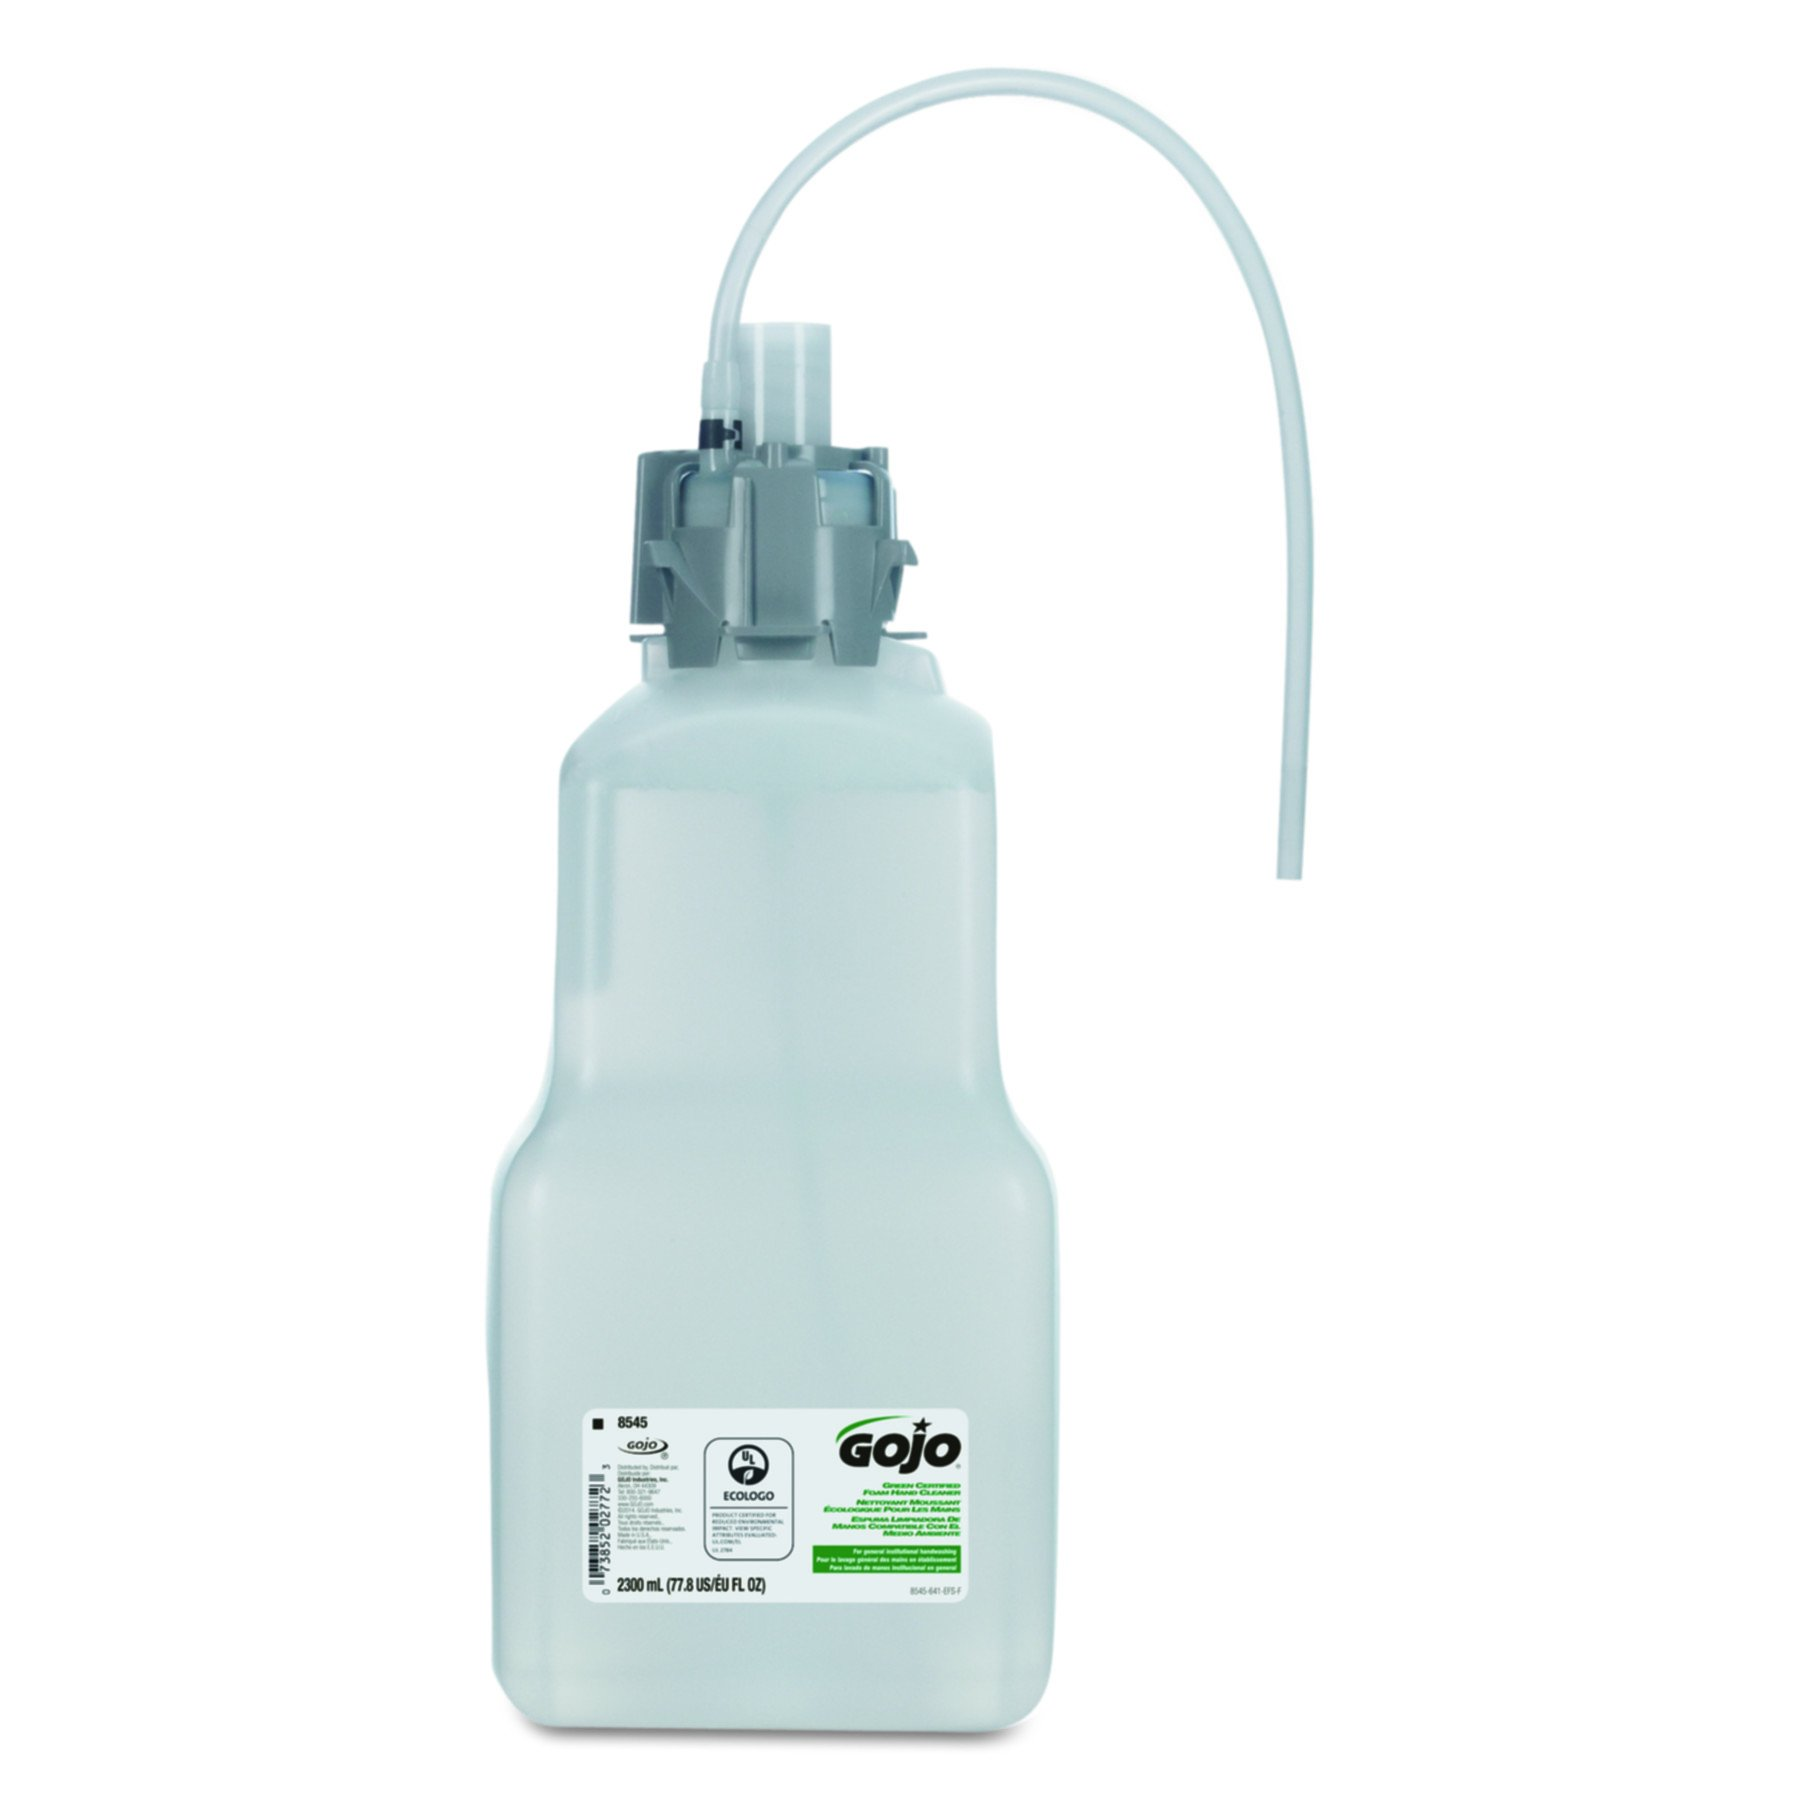 GOJO 854504 CX & CXI Green Certified Foam Hand Cleaner, Unscented, 2300mL Refill (Case of 4) by Gojo